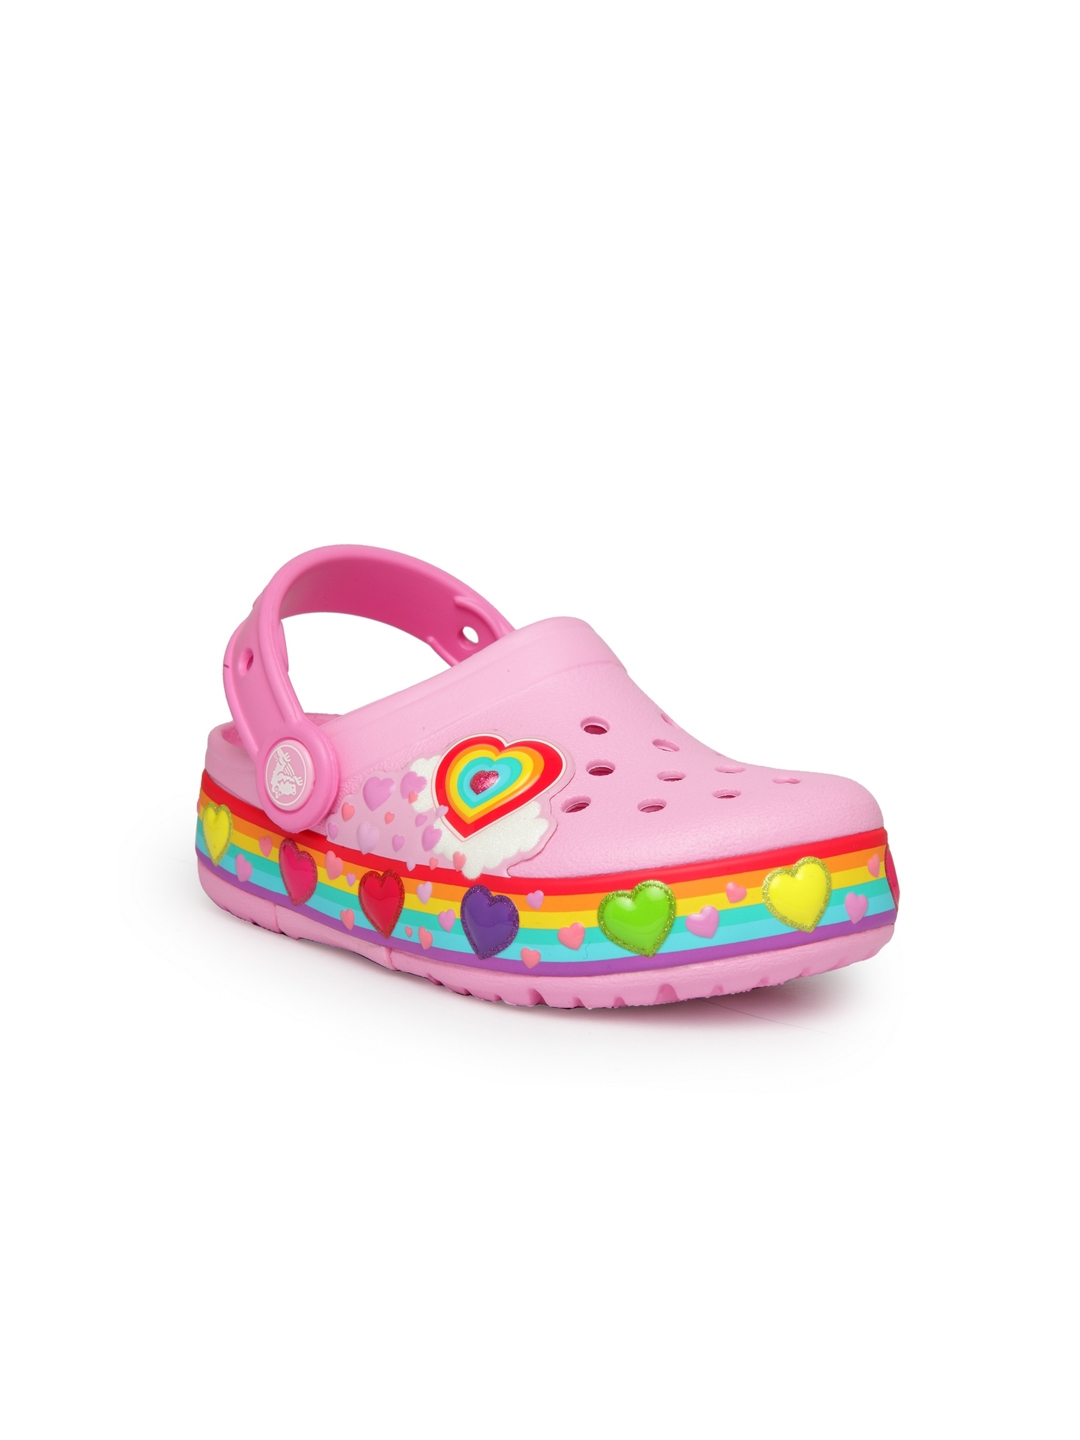 48ffa5f95 Buy Crocs Girls Pink Self Design Clogs - Flip Flops for Girls ...